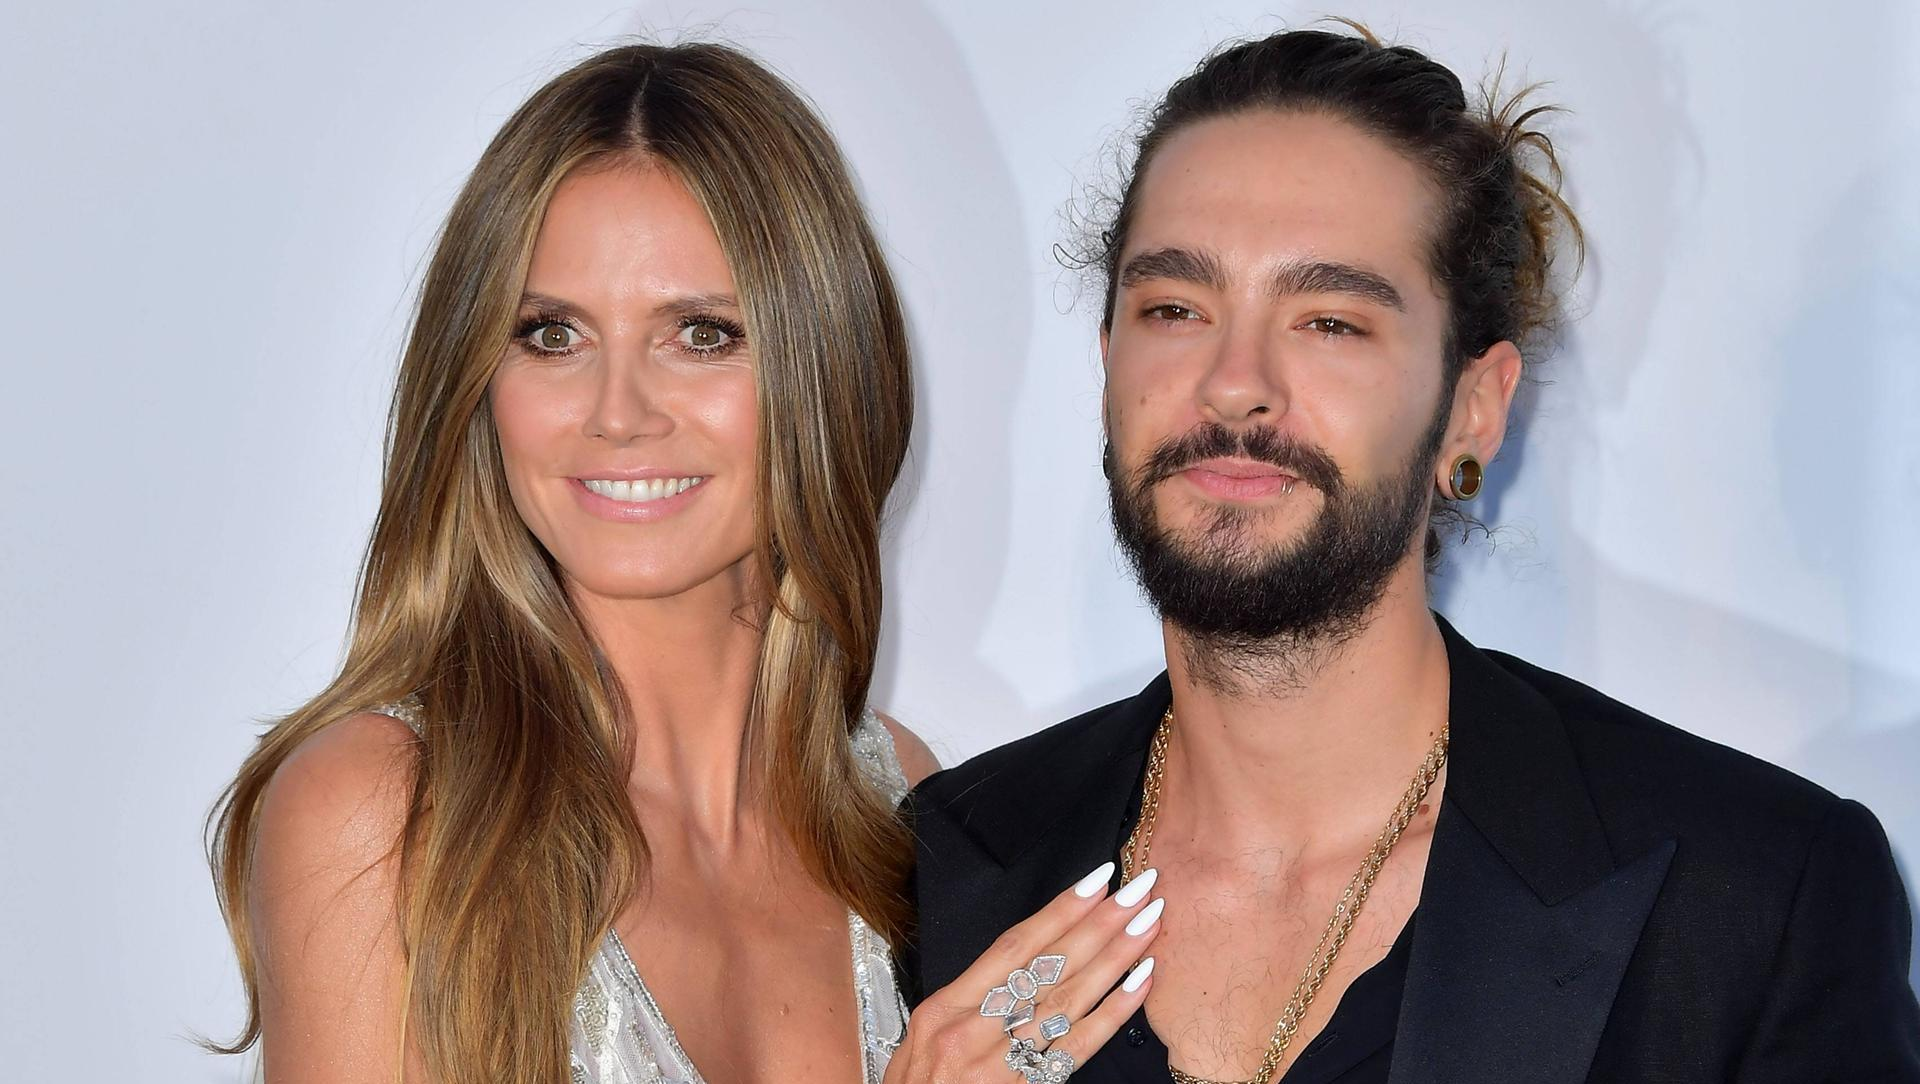 heidi klum und tom kaulitz wilde knutscherei in blauer grotte. Black Bedroom Furniture Sets. Home Design Ideas